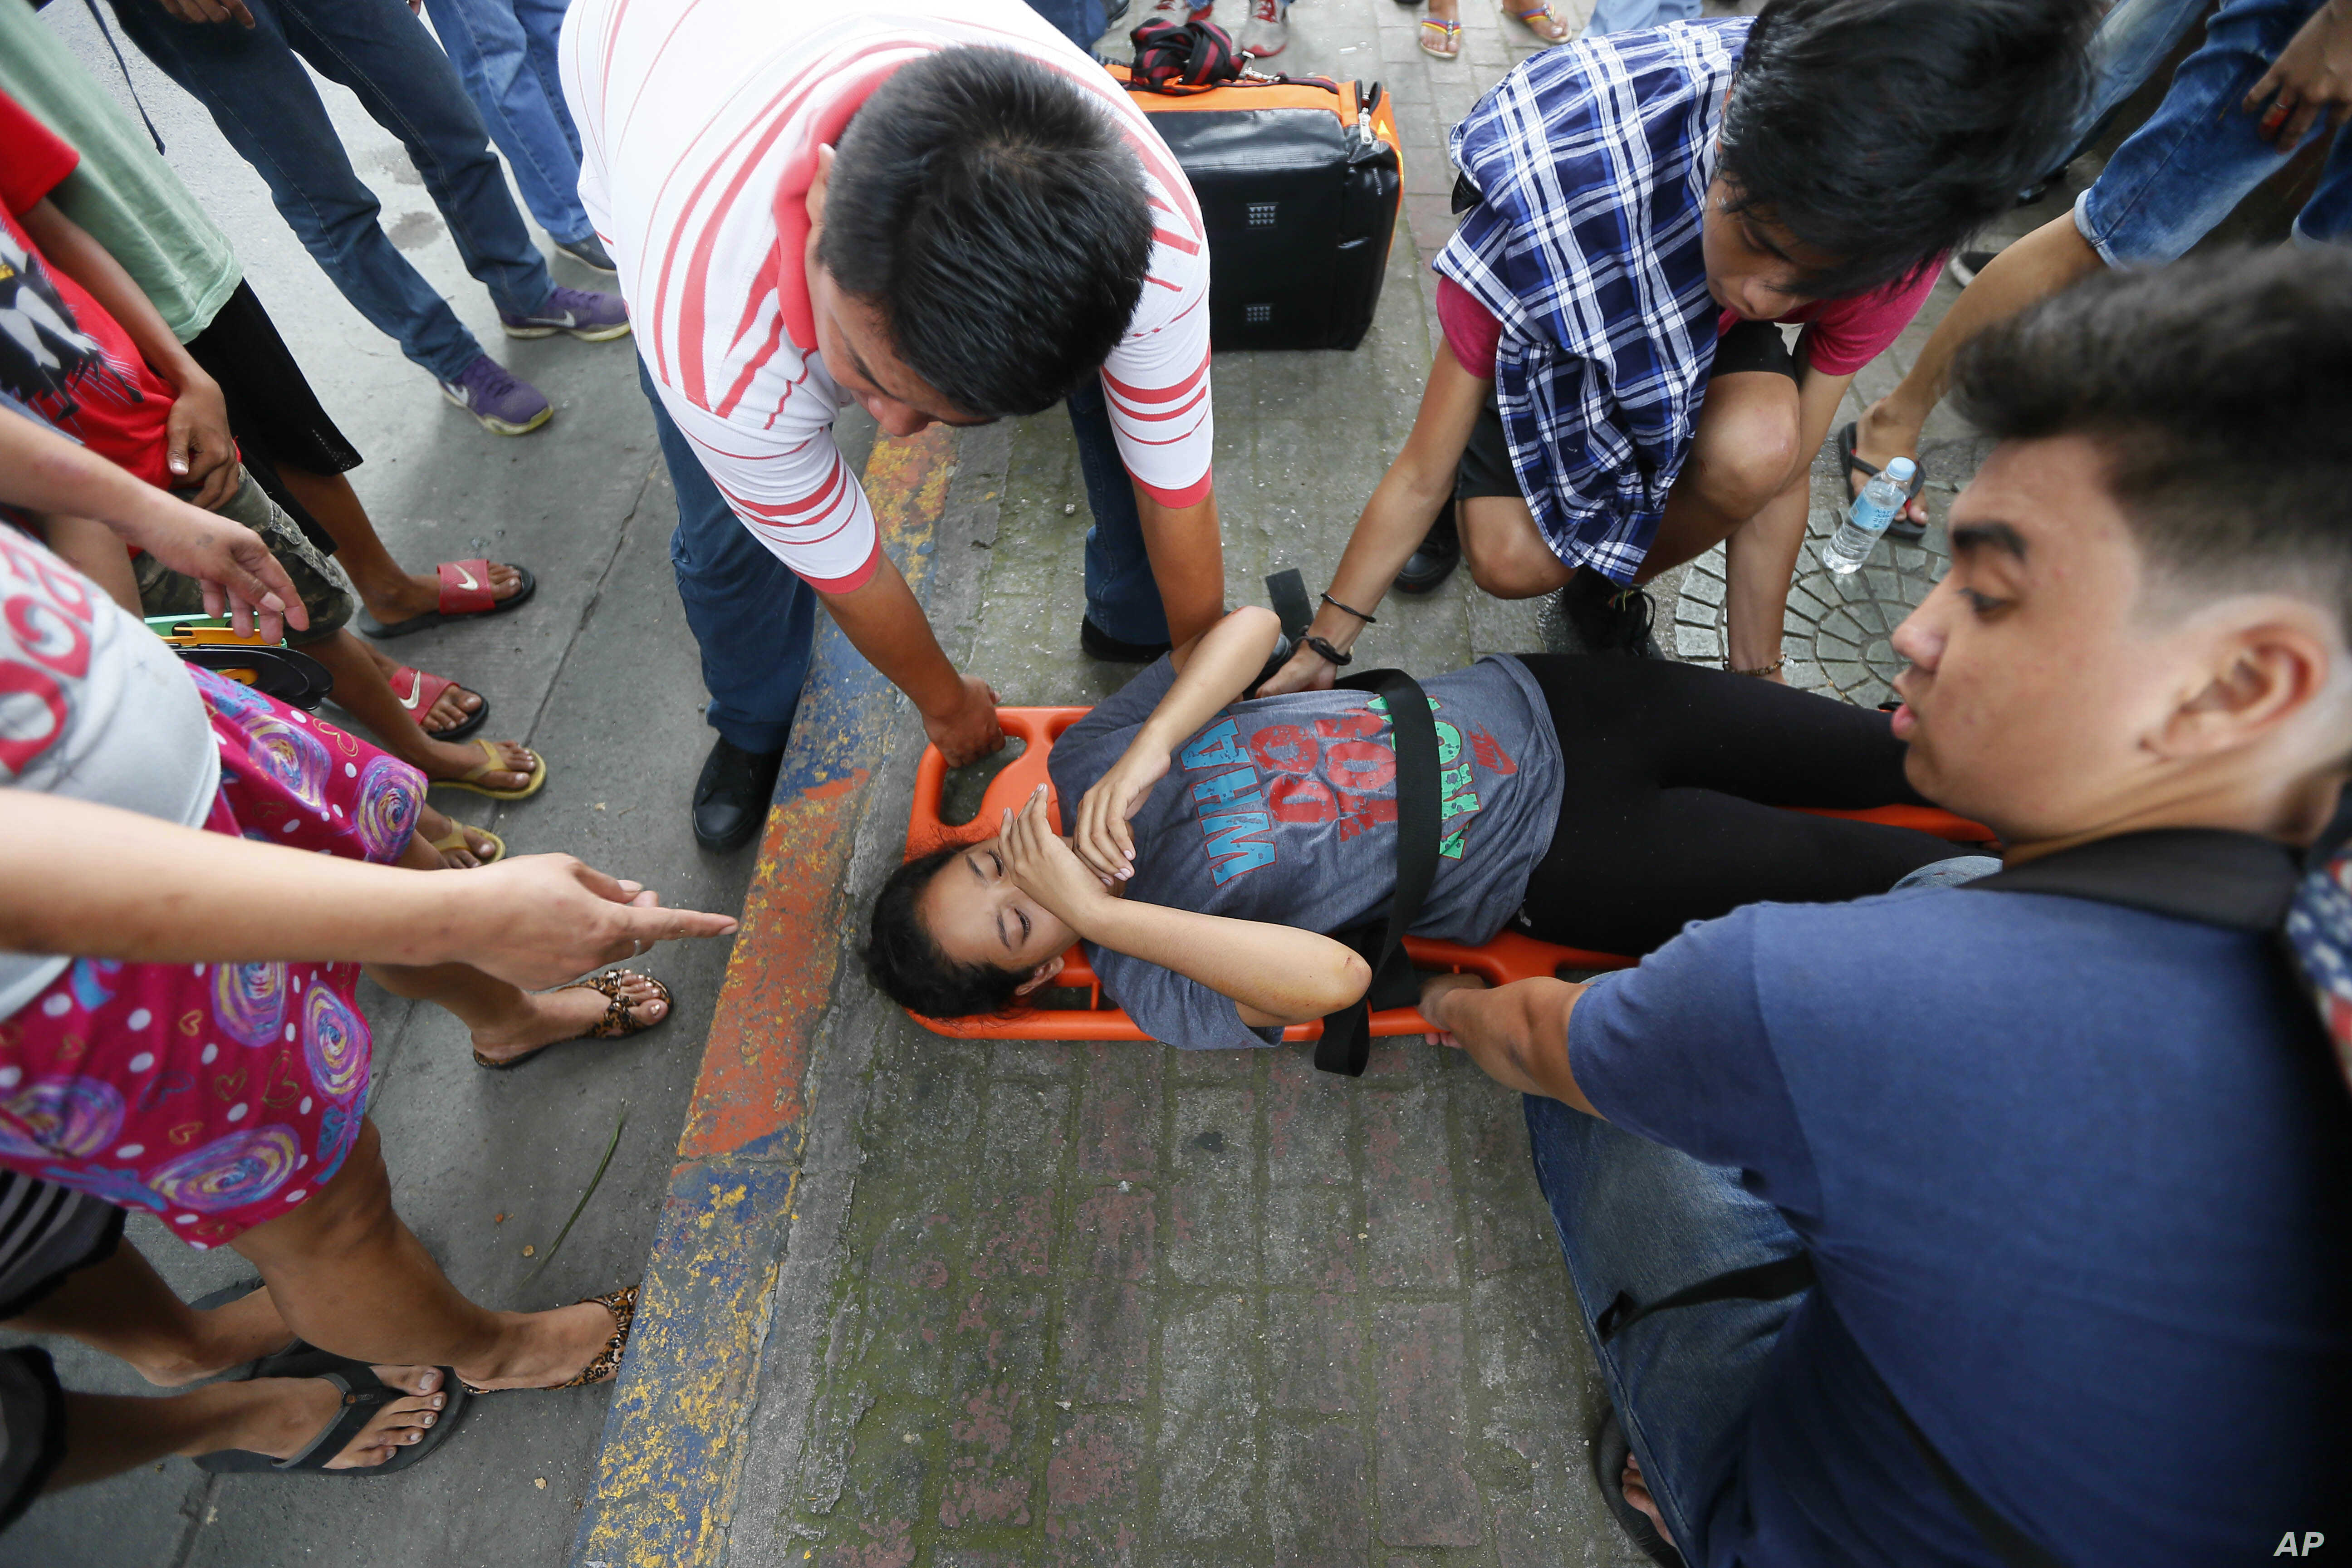 A protester who was run over by a Philippine National Police van waits for treatment outside the U.S. Embassy in Manila, Philippines, Oct. 19, 2016.